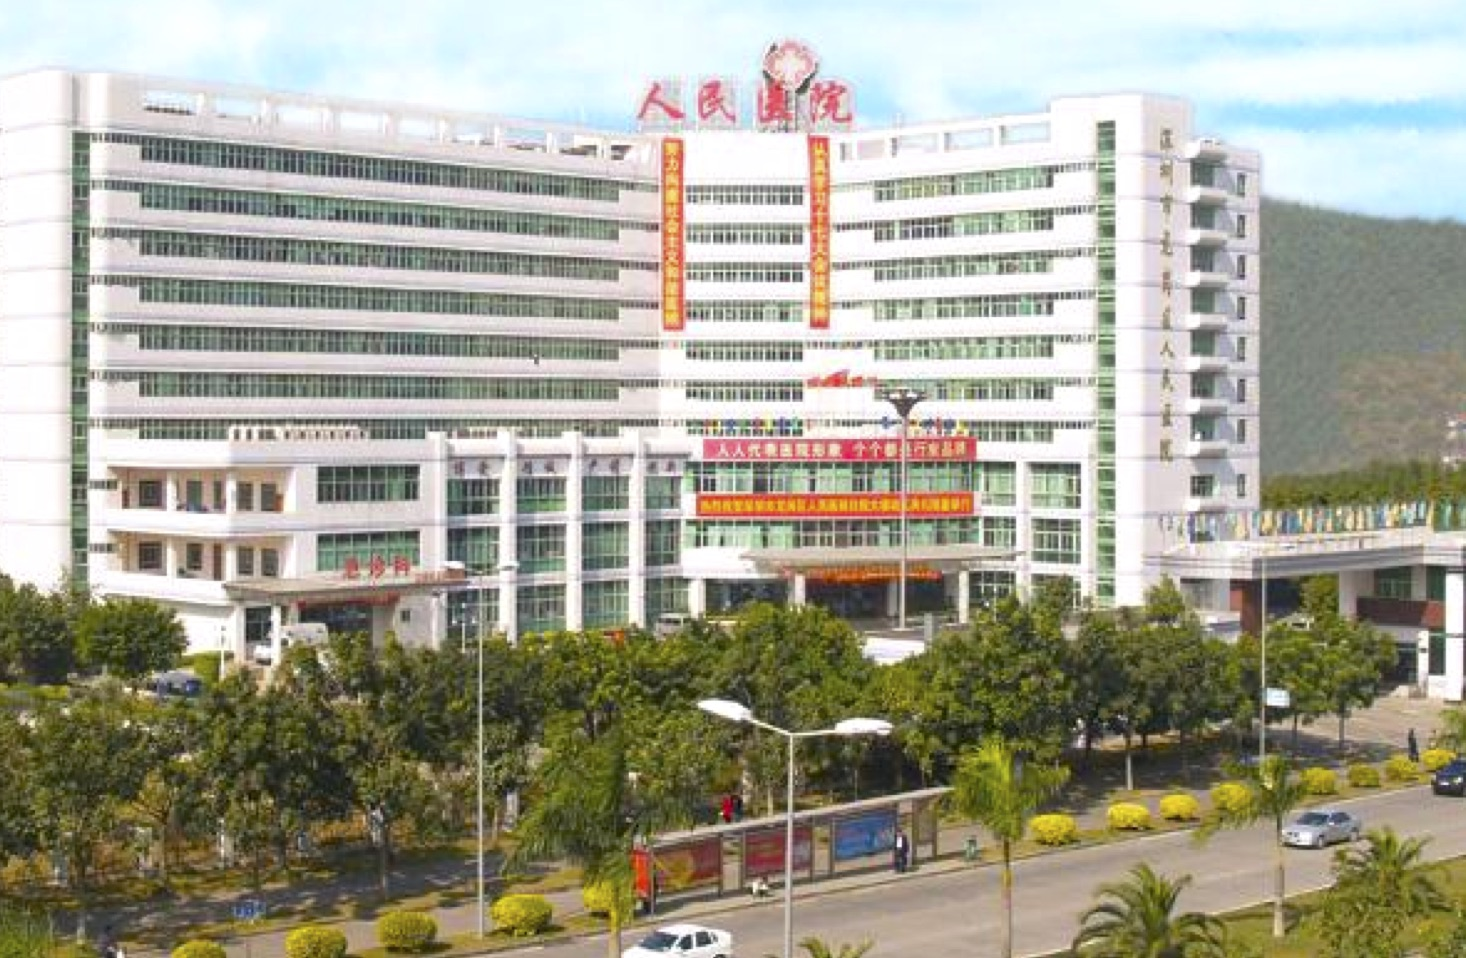 Hospital Gives Wrong Drugs to Ectopic Pregnancy Patient in Shenzhen